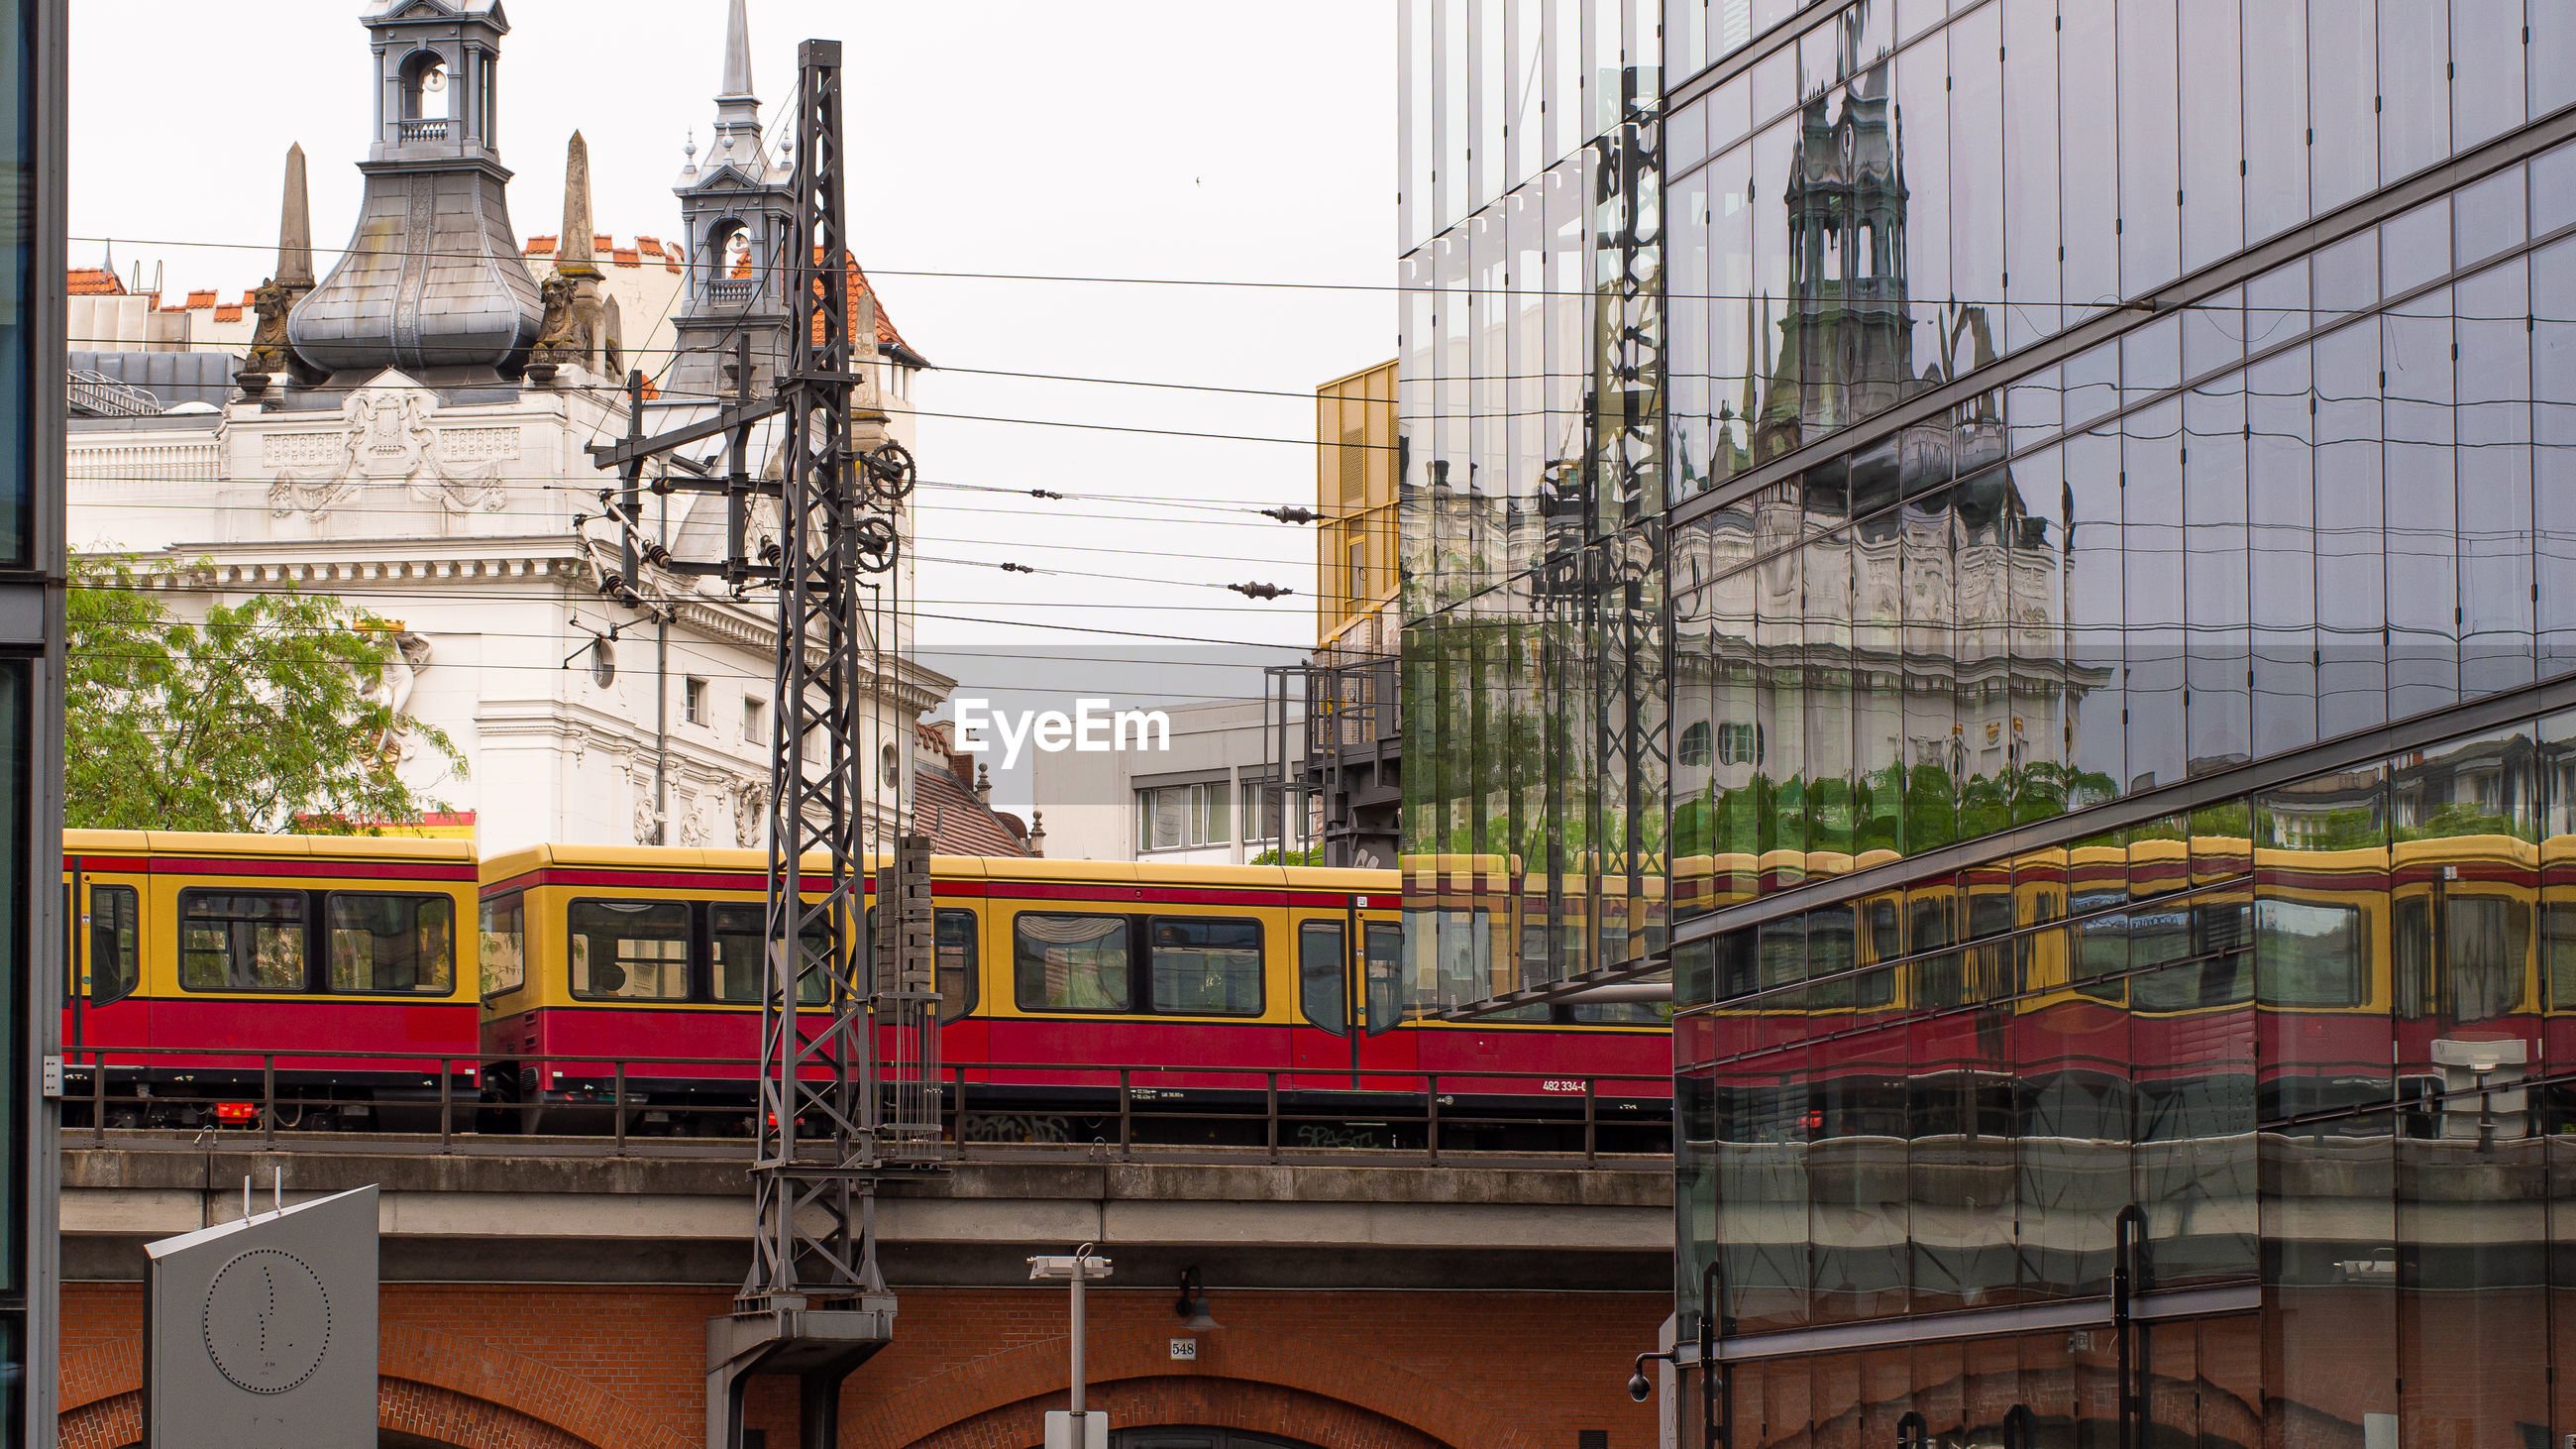 TRAIN ON RAILROAD TRACKS IN CITY AGAINST CLEAR SKY